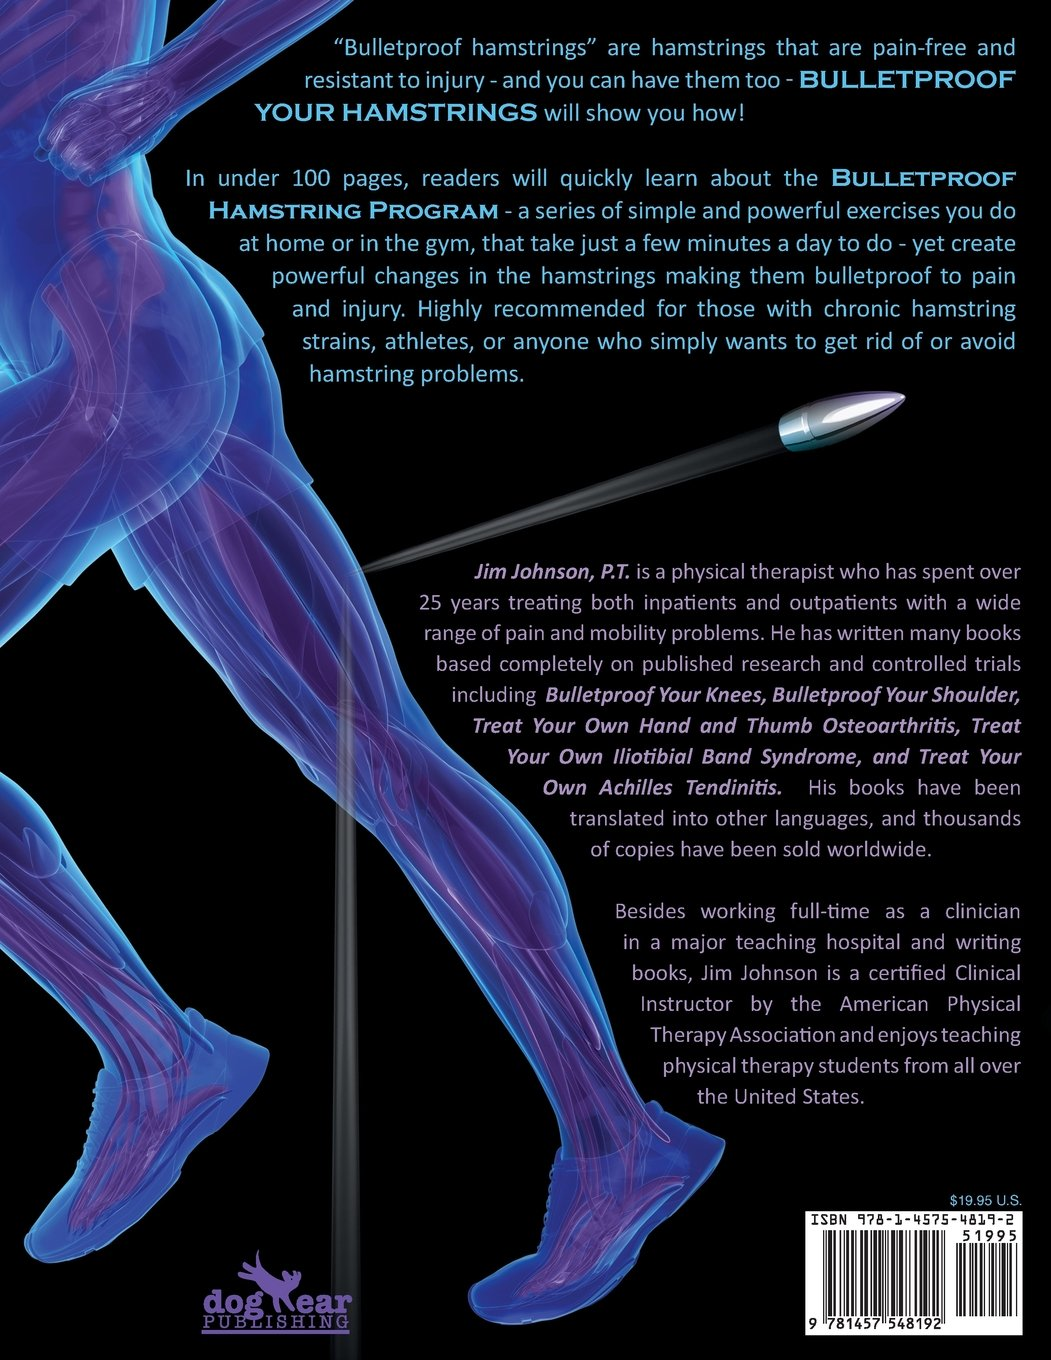 Books on physical therapy - Bulletproof Your Hamstrings Optimizing Hamstring Function To End Pain And Resist Injury Jim Johnson 9781457548192 Amazon Com Books